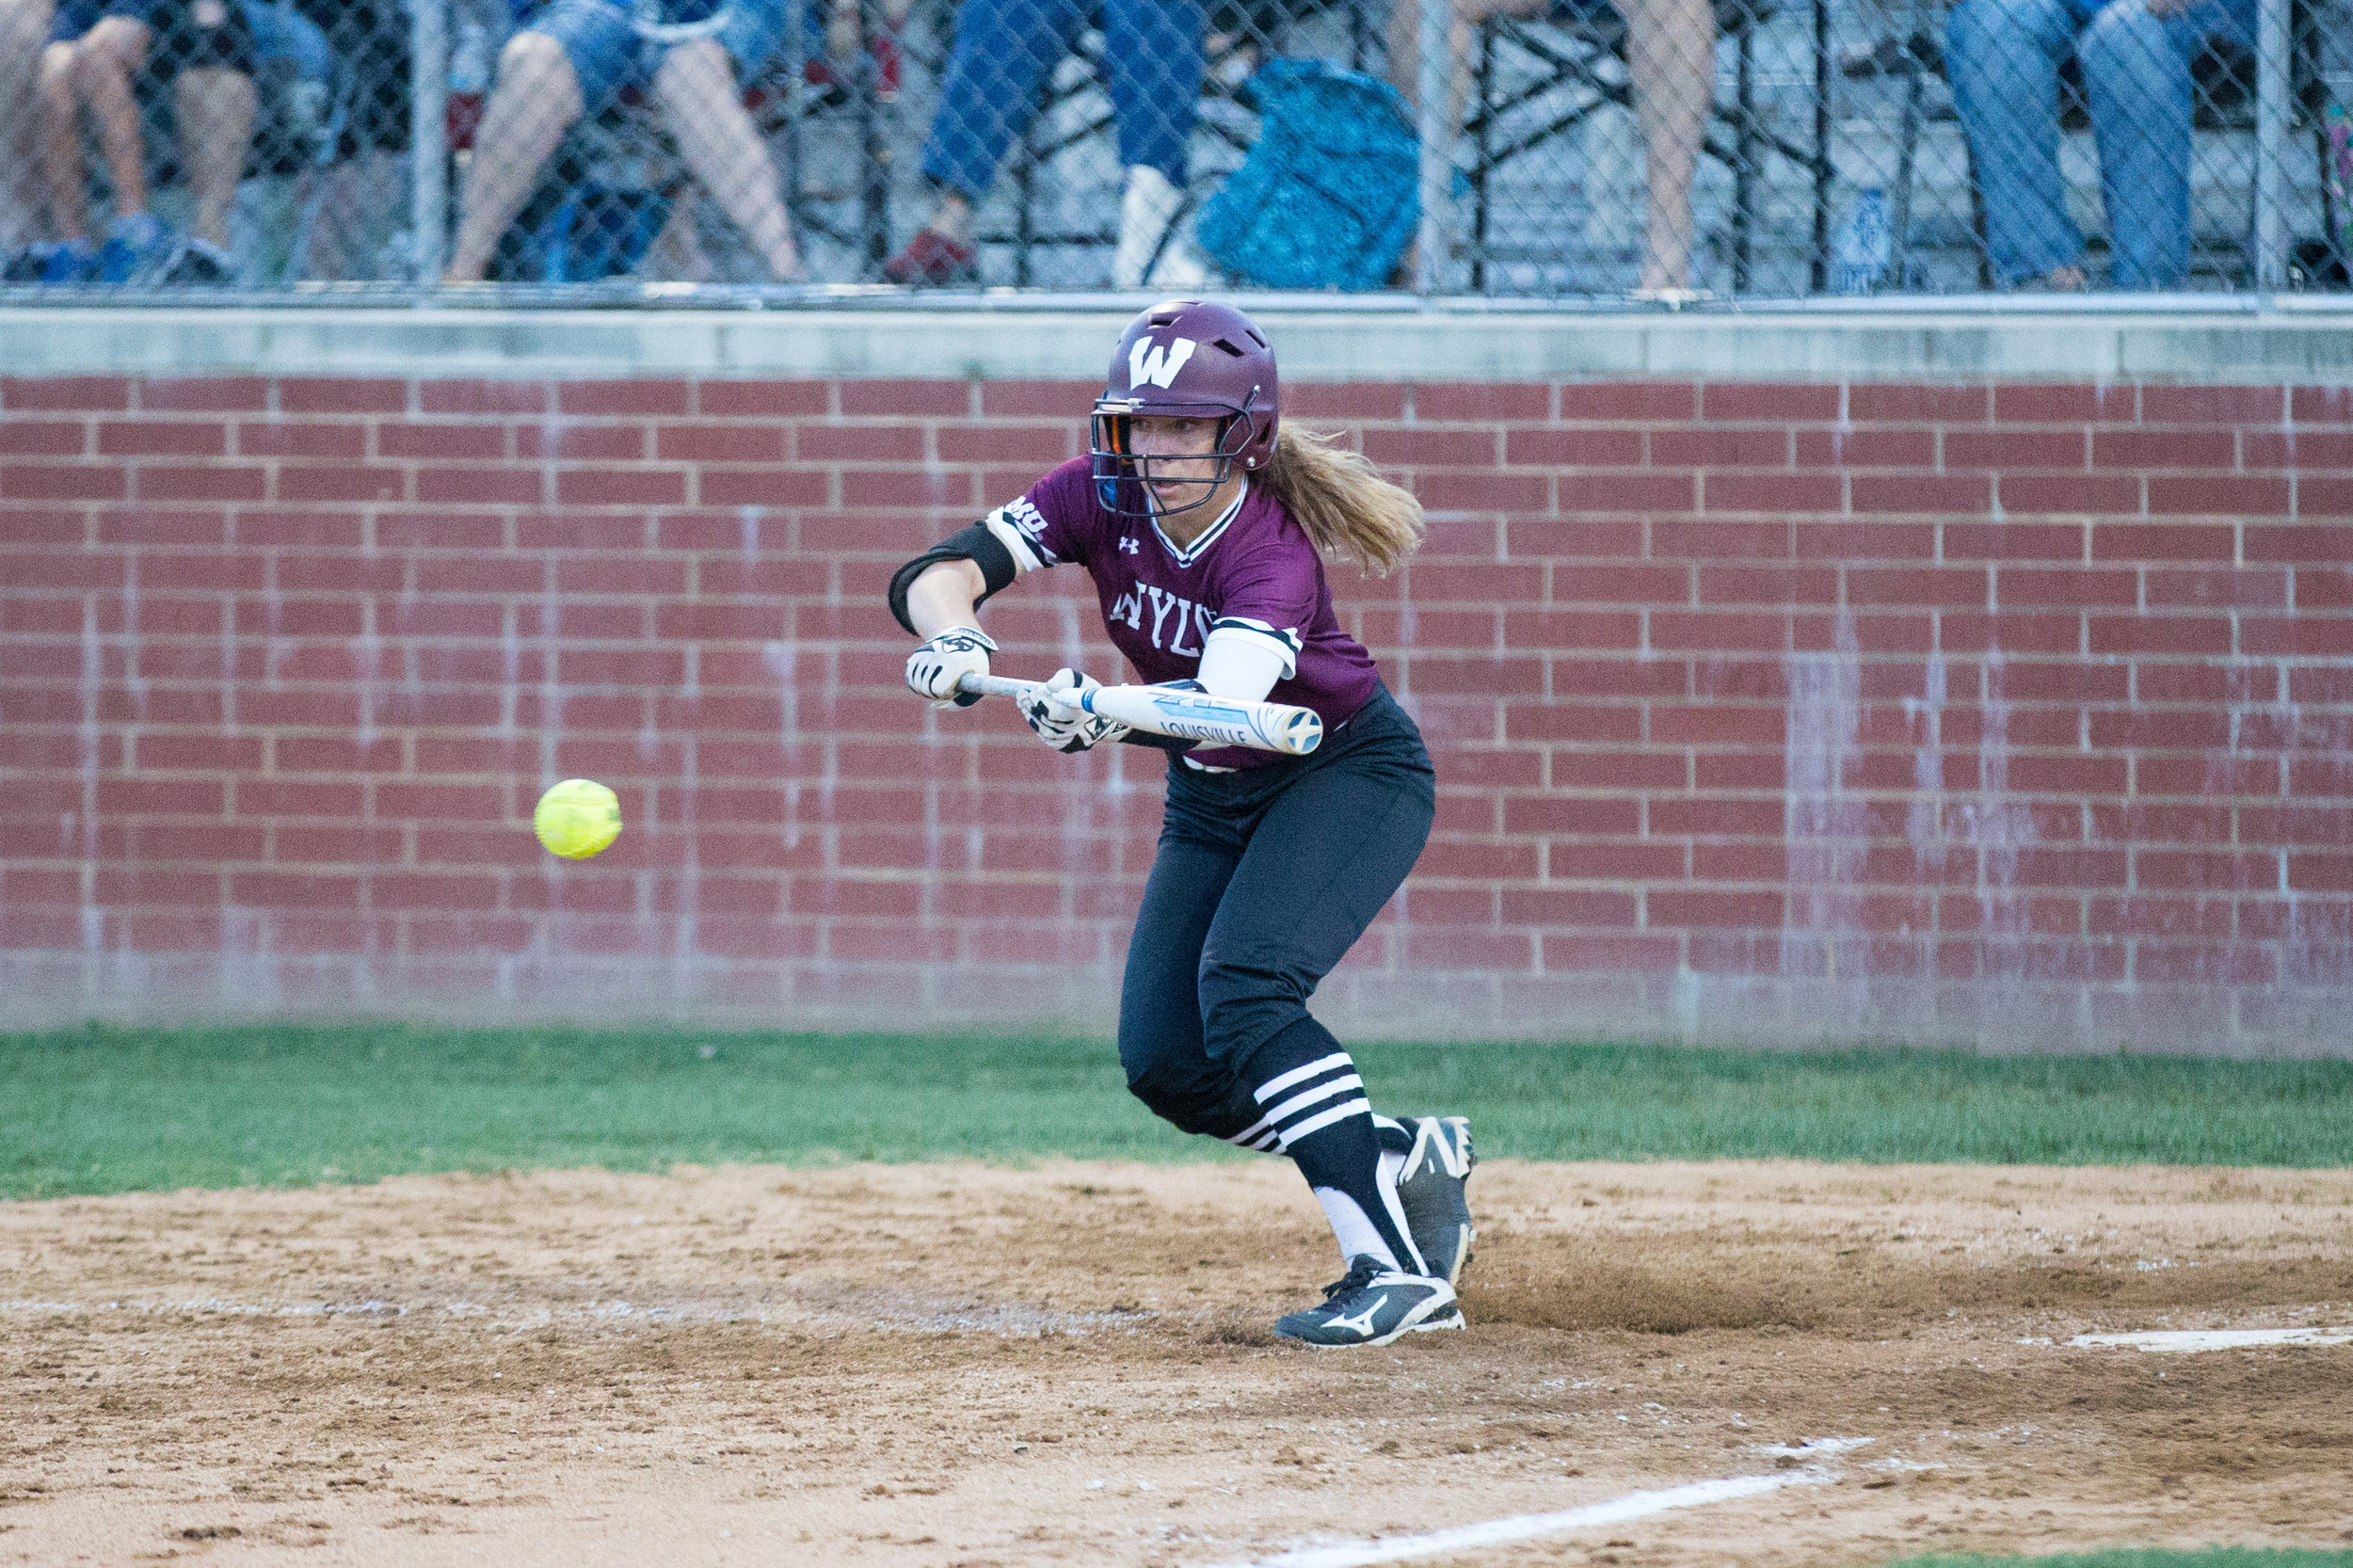 5_18 Wylie Softball-158.jpg